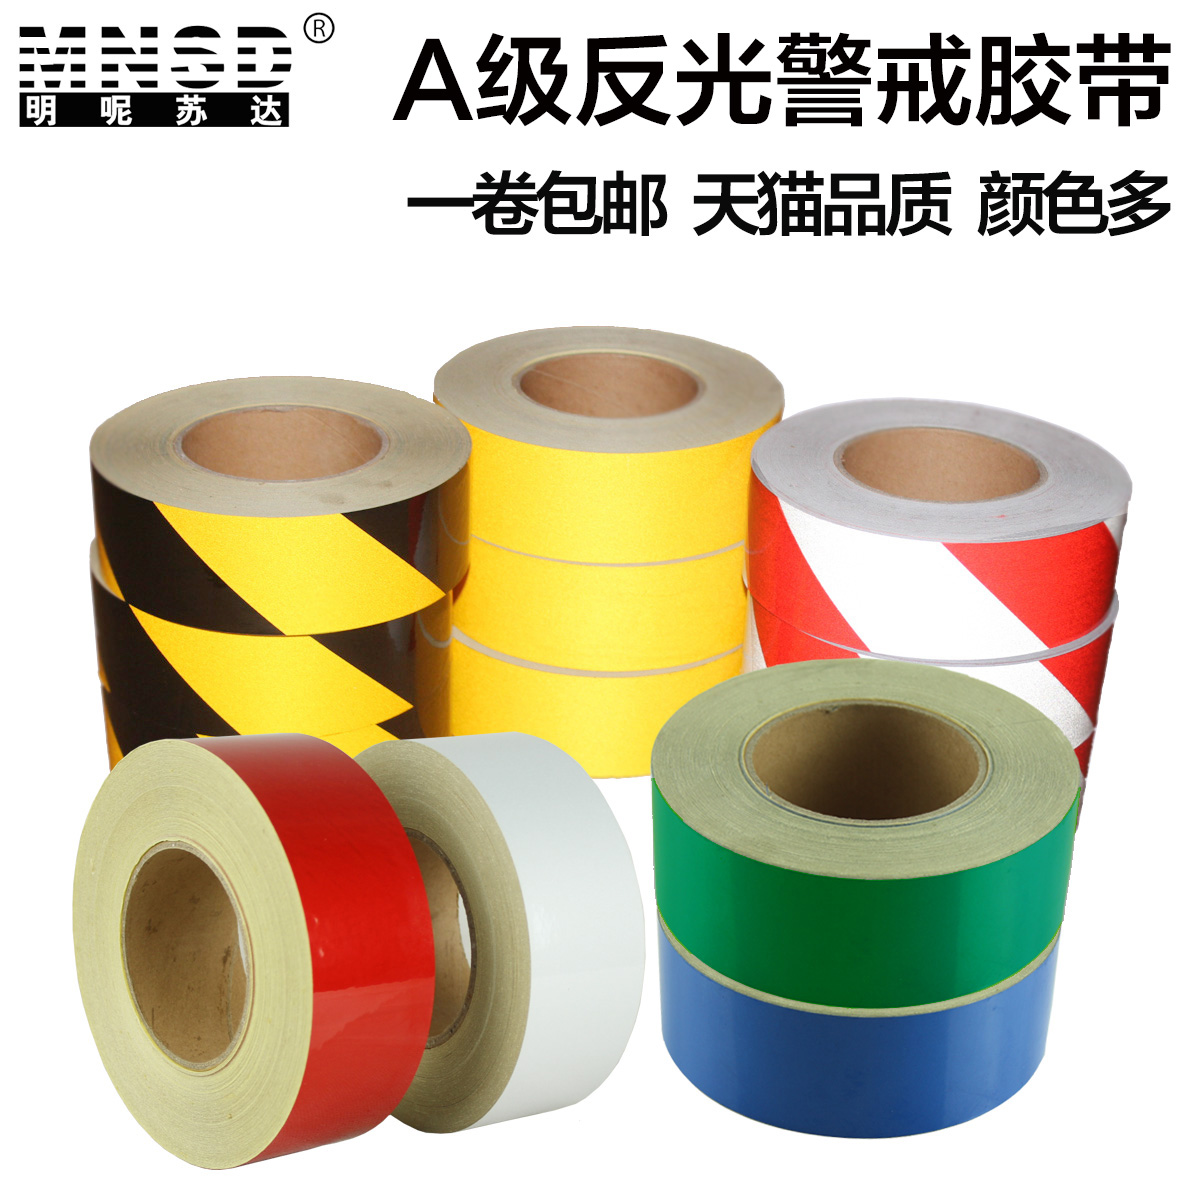 Mnsd 5CM cm reflective warning tape warning tape 3100 reflective film reflective safety warning marking tape wall with plastic stickers